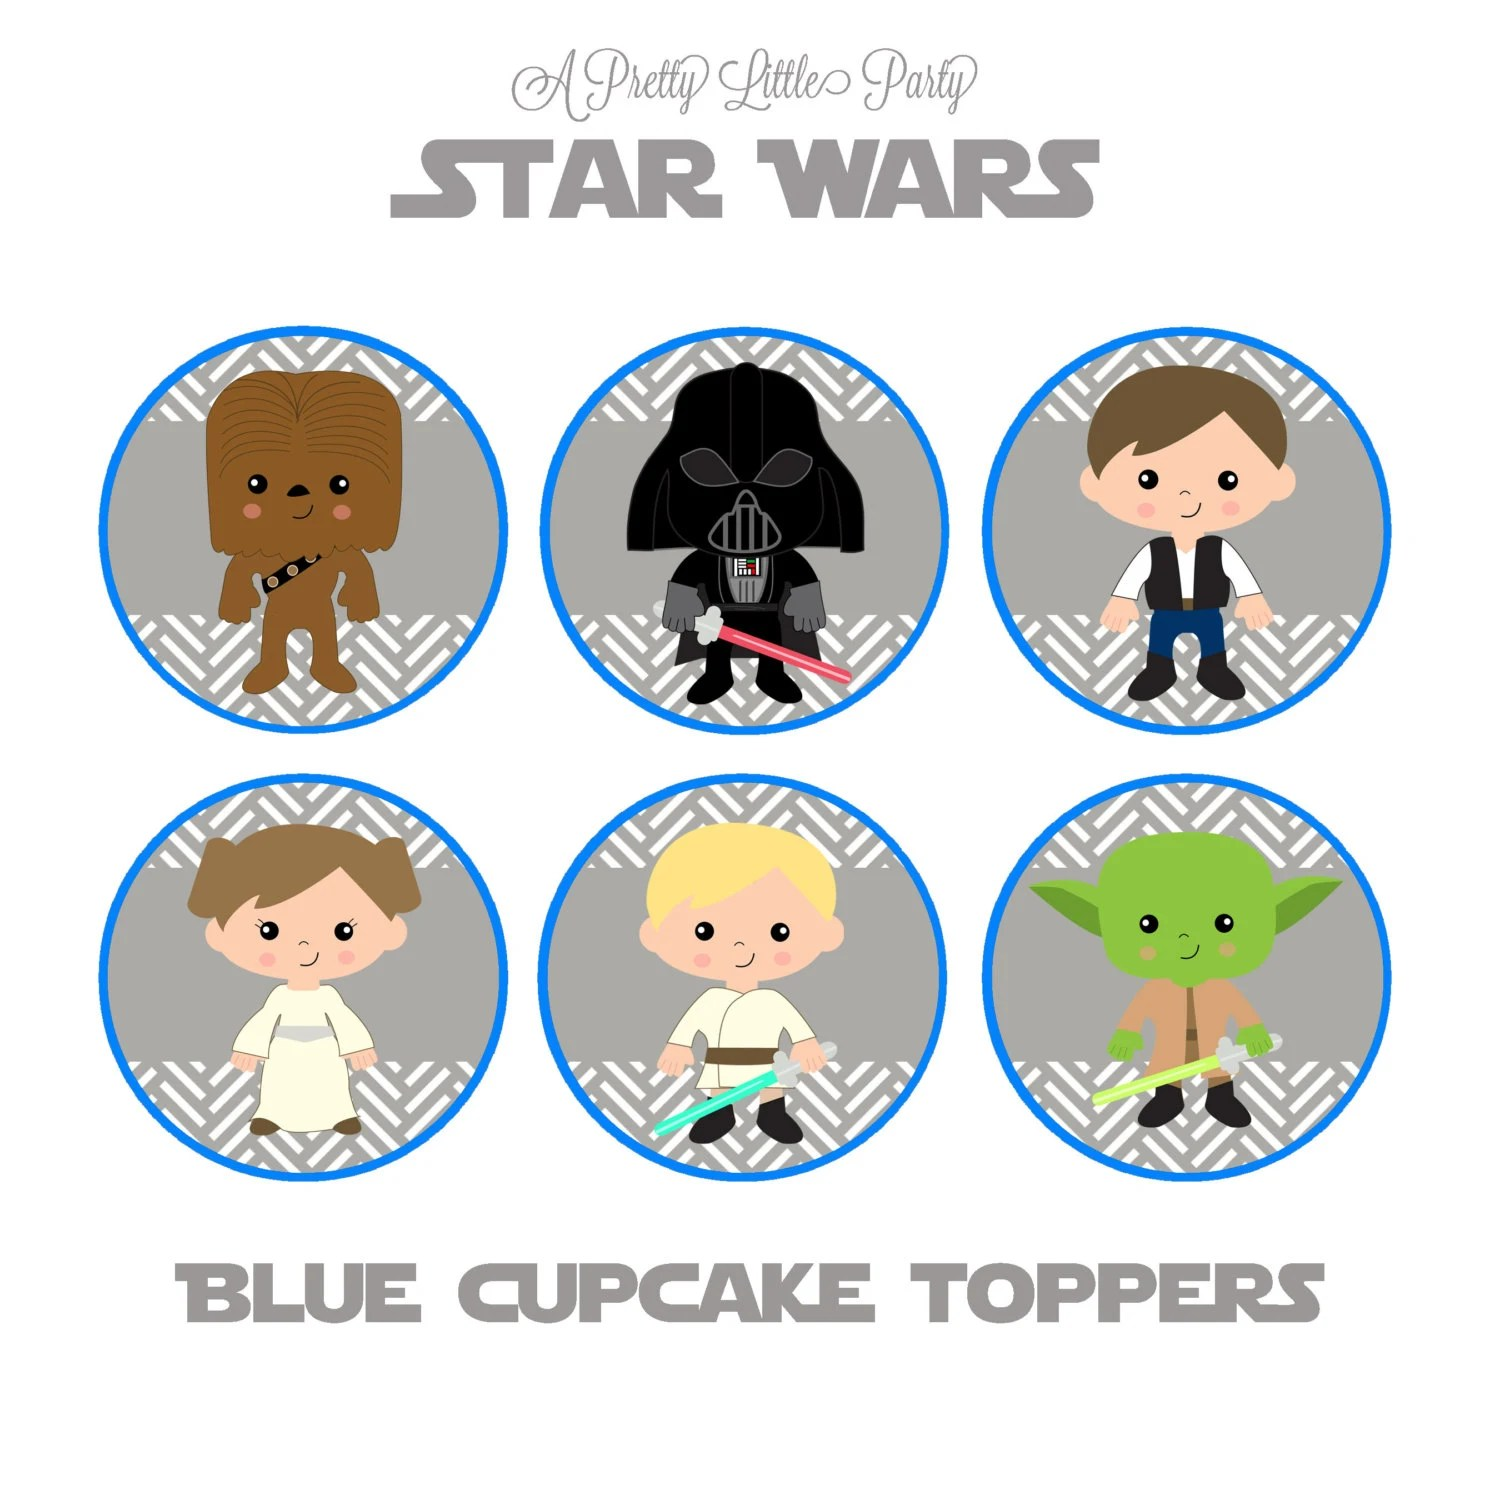 Star Wars Cupcake Toppers In Blue Character Cupcake Toppers